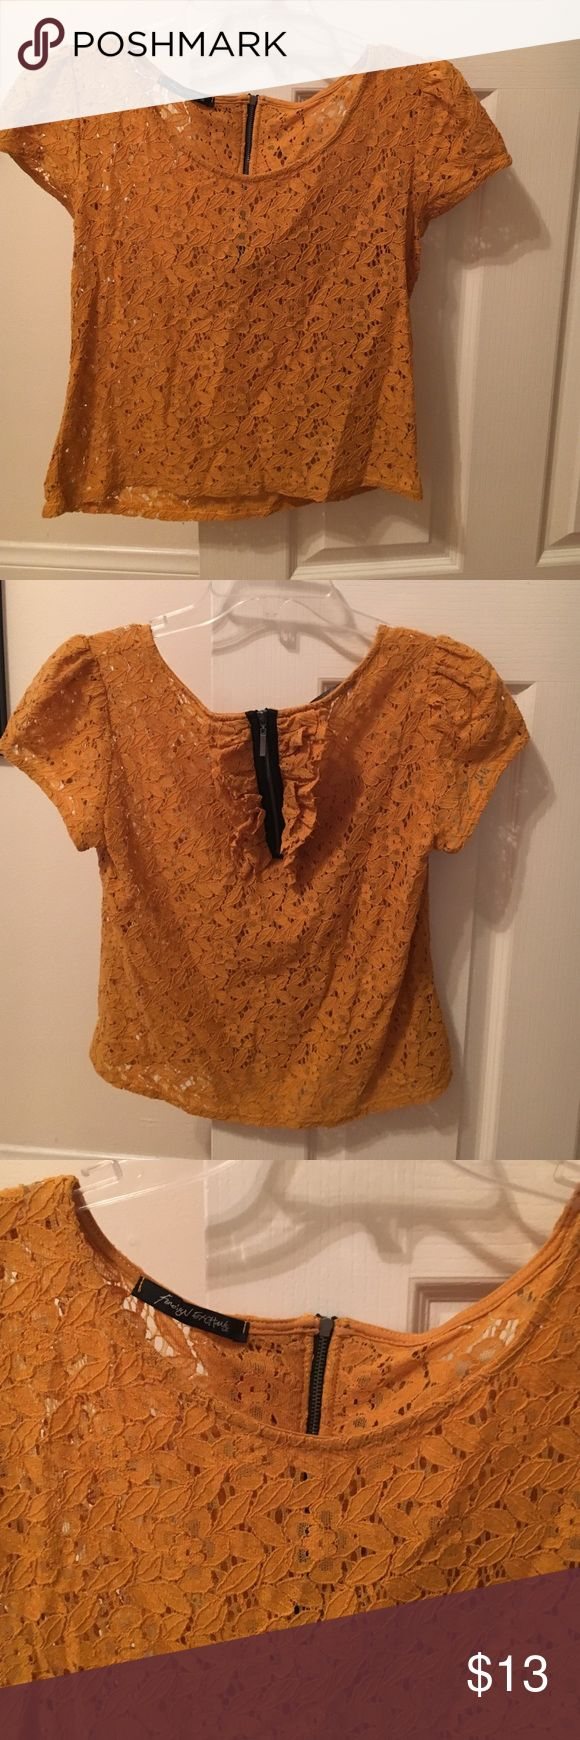 Foreign Exchange mustard yellow top Adorable mustard yellow top. Looks great with dark blue jeans or short skirt. Foreign Exchange Tops